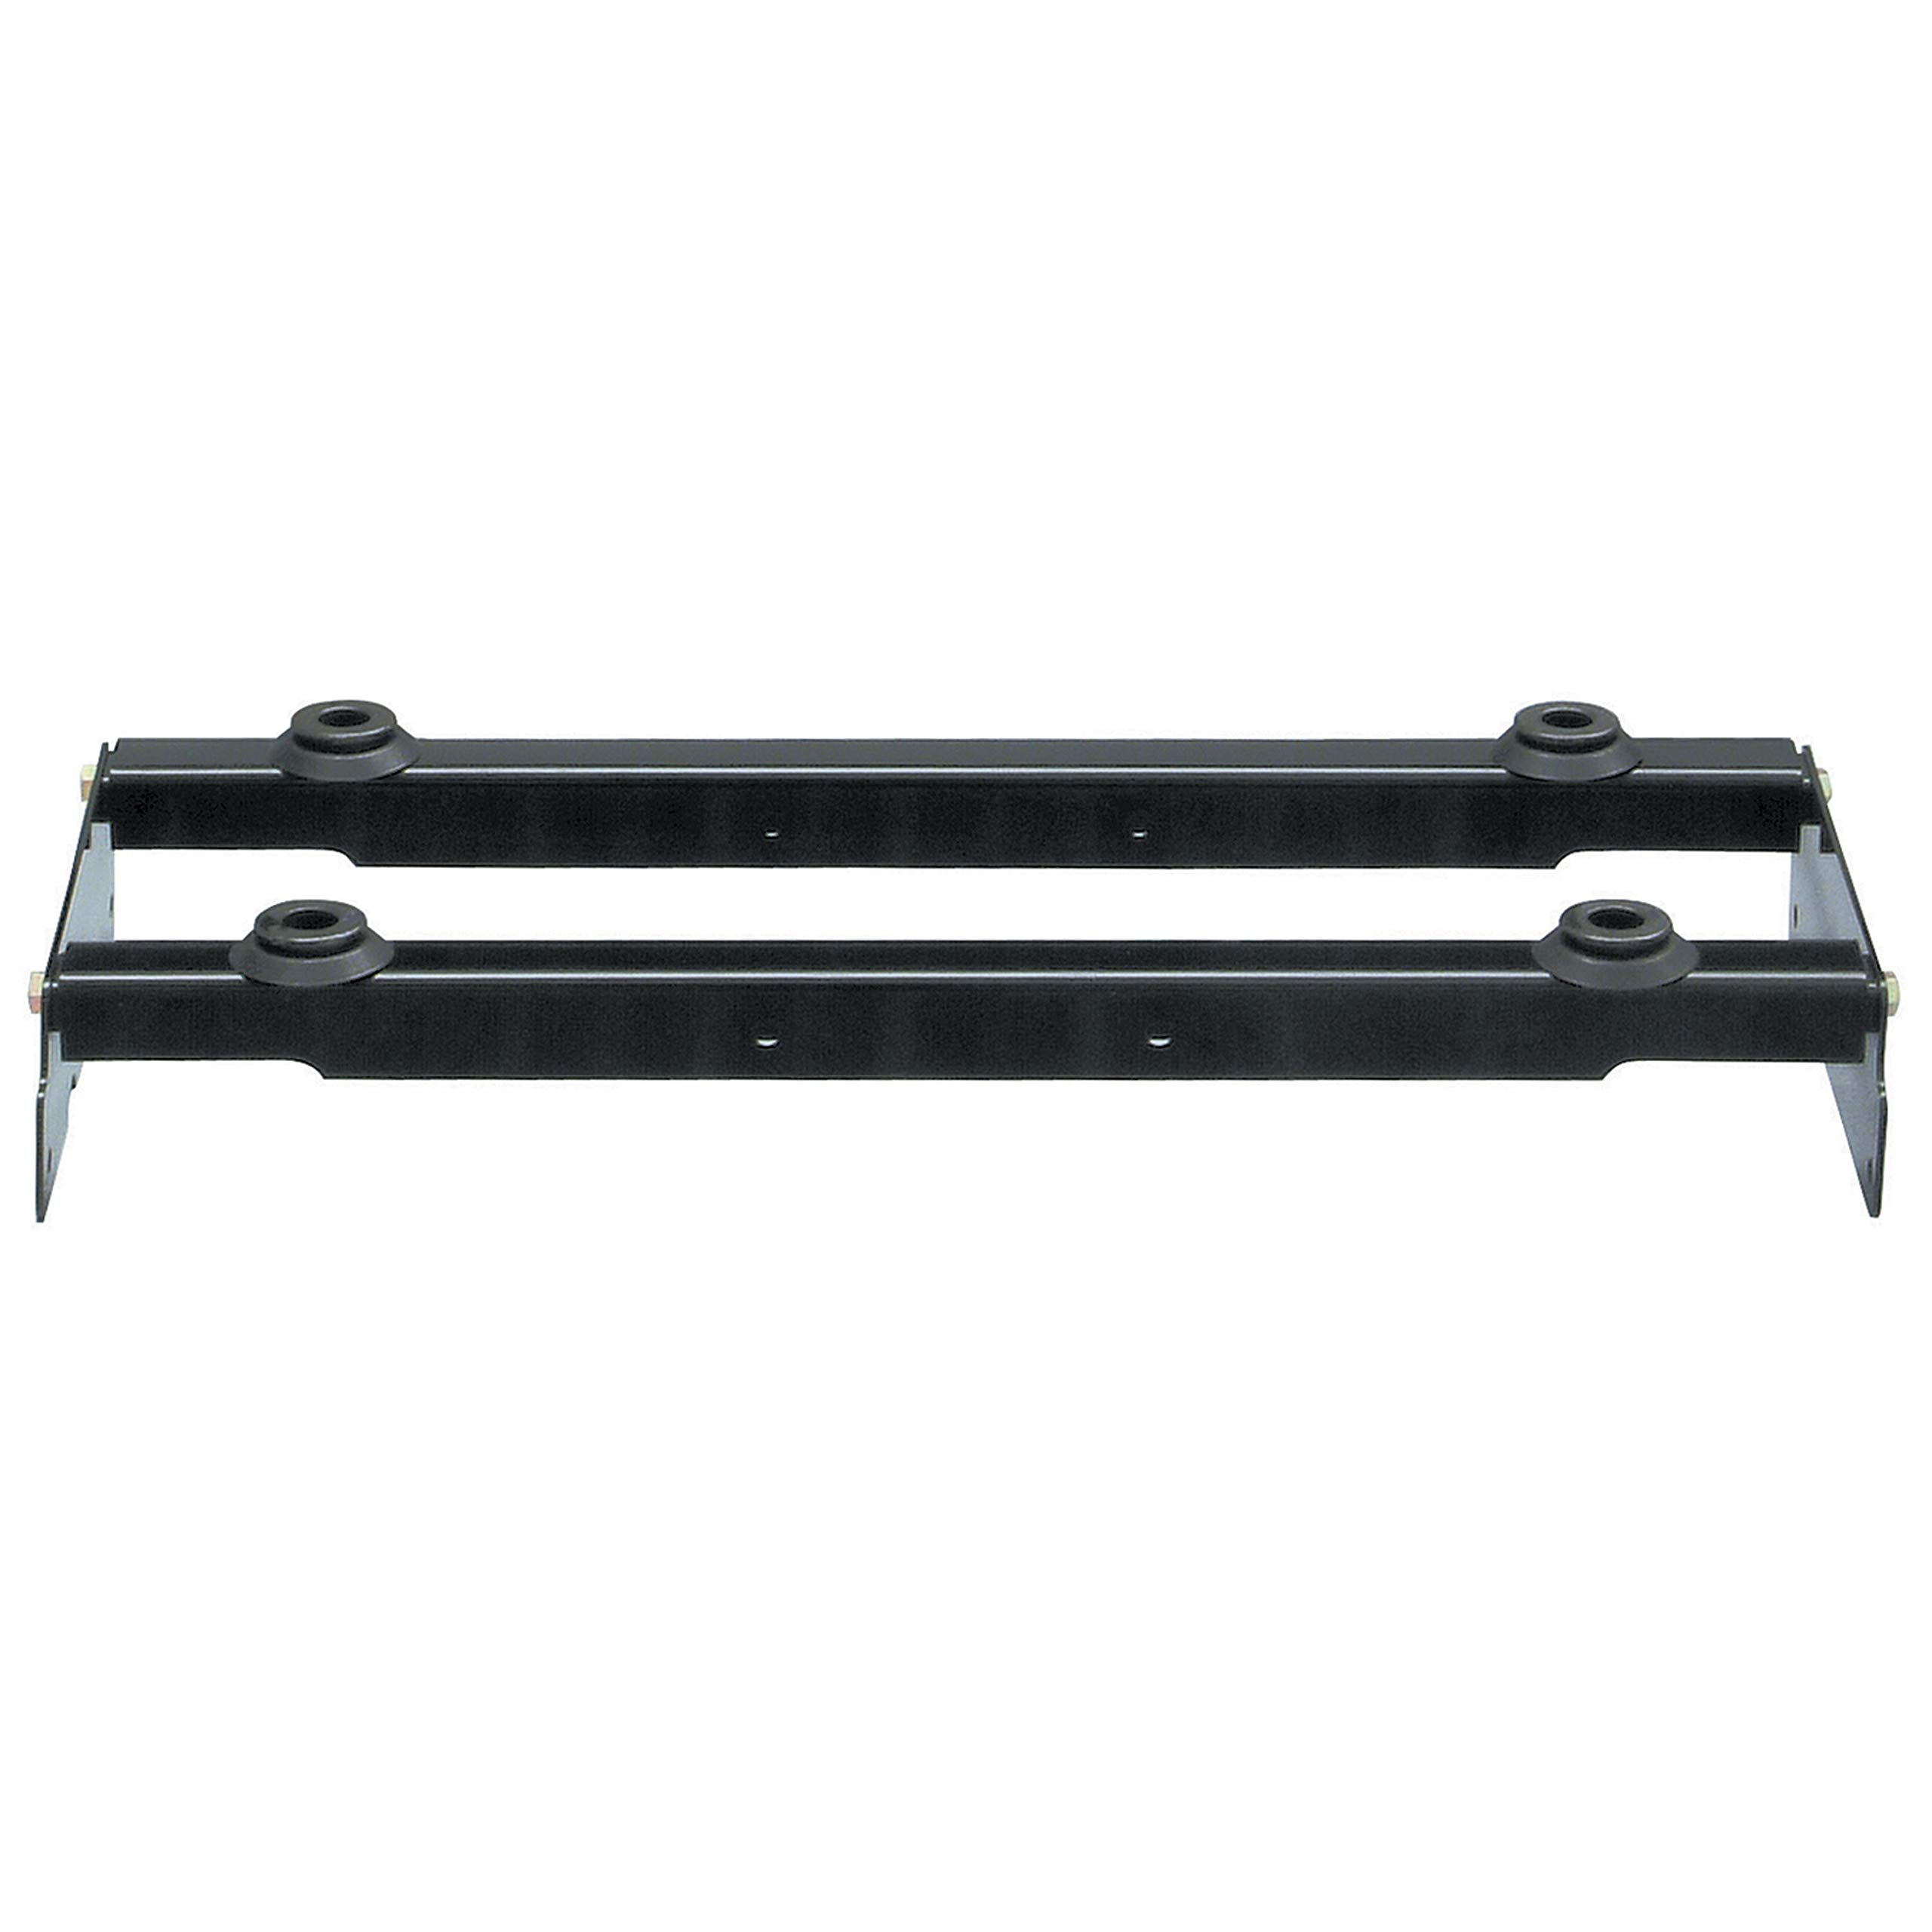 Reese 30062 Signature Series Fifth Wheel Rail Kit by Reese